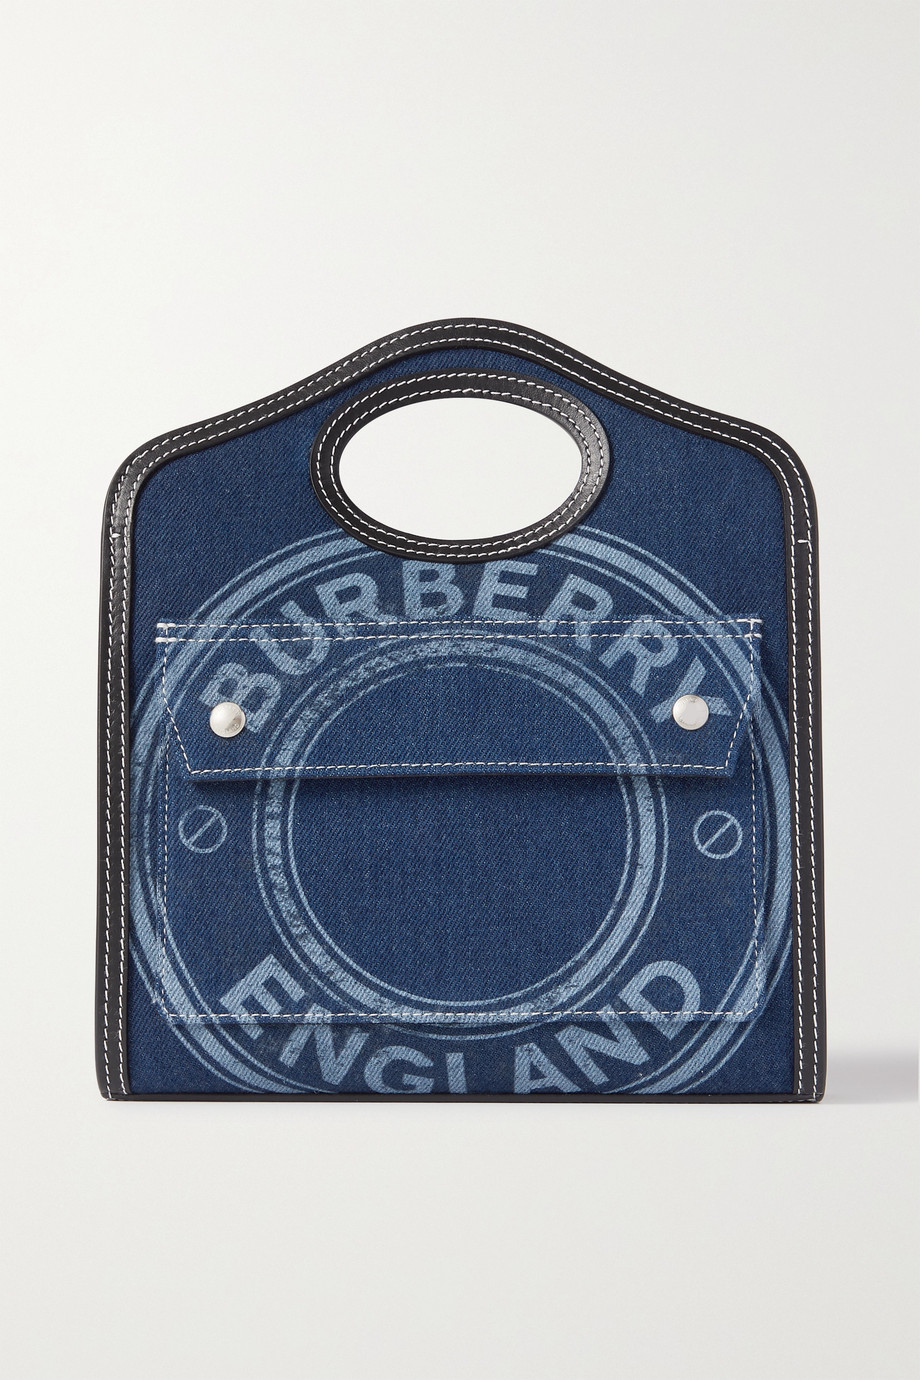 버버리 Burberry Pocket mini leather-trimmed printed denim tote,Blue